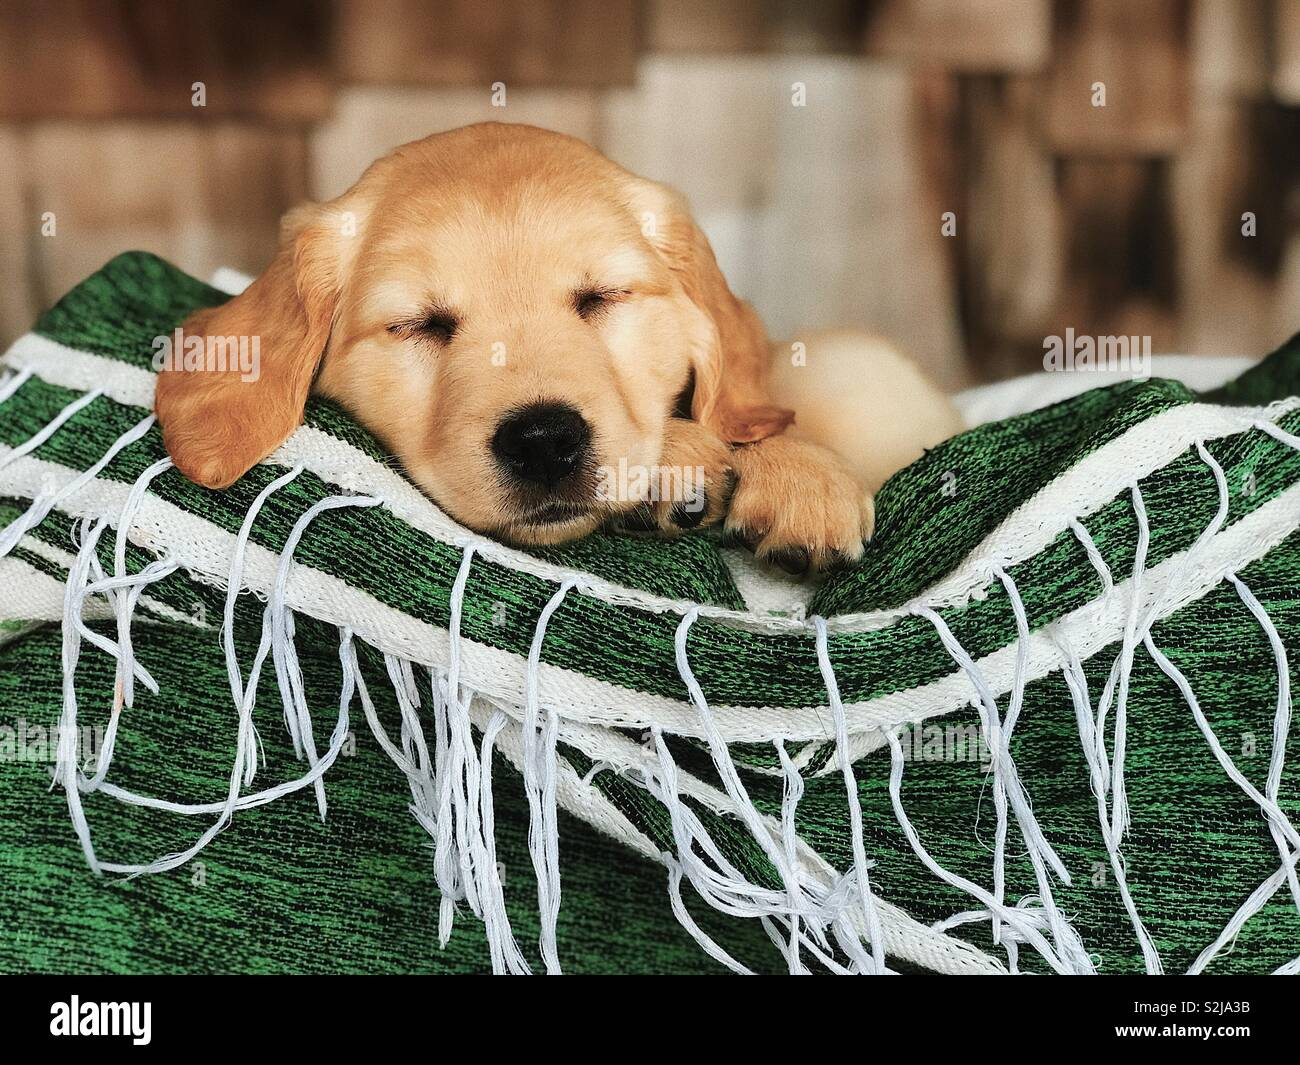 Cute puppy sleeping - Stock Image